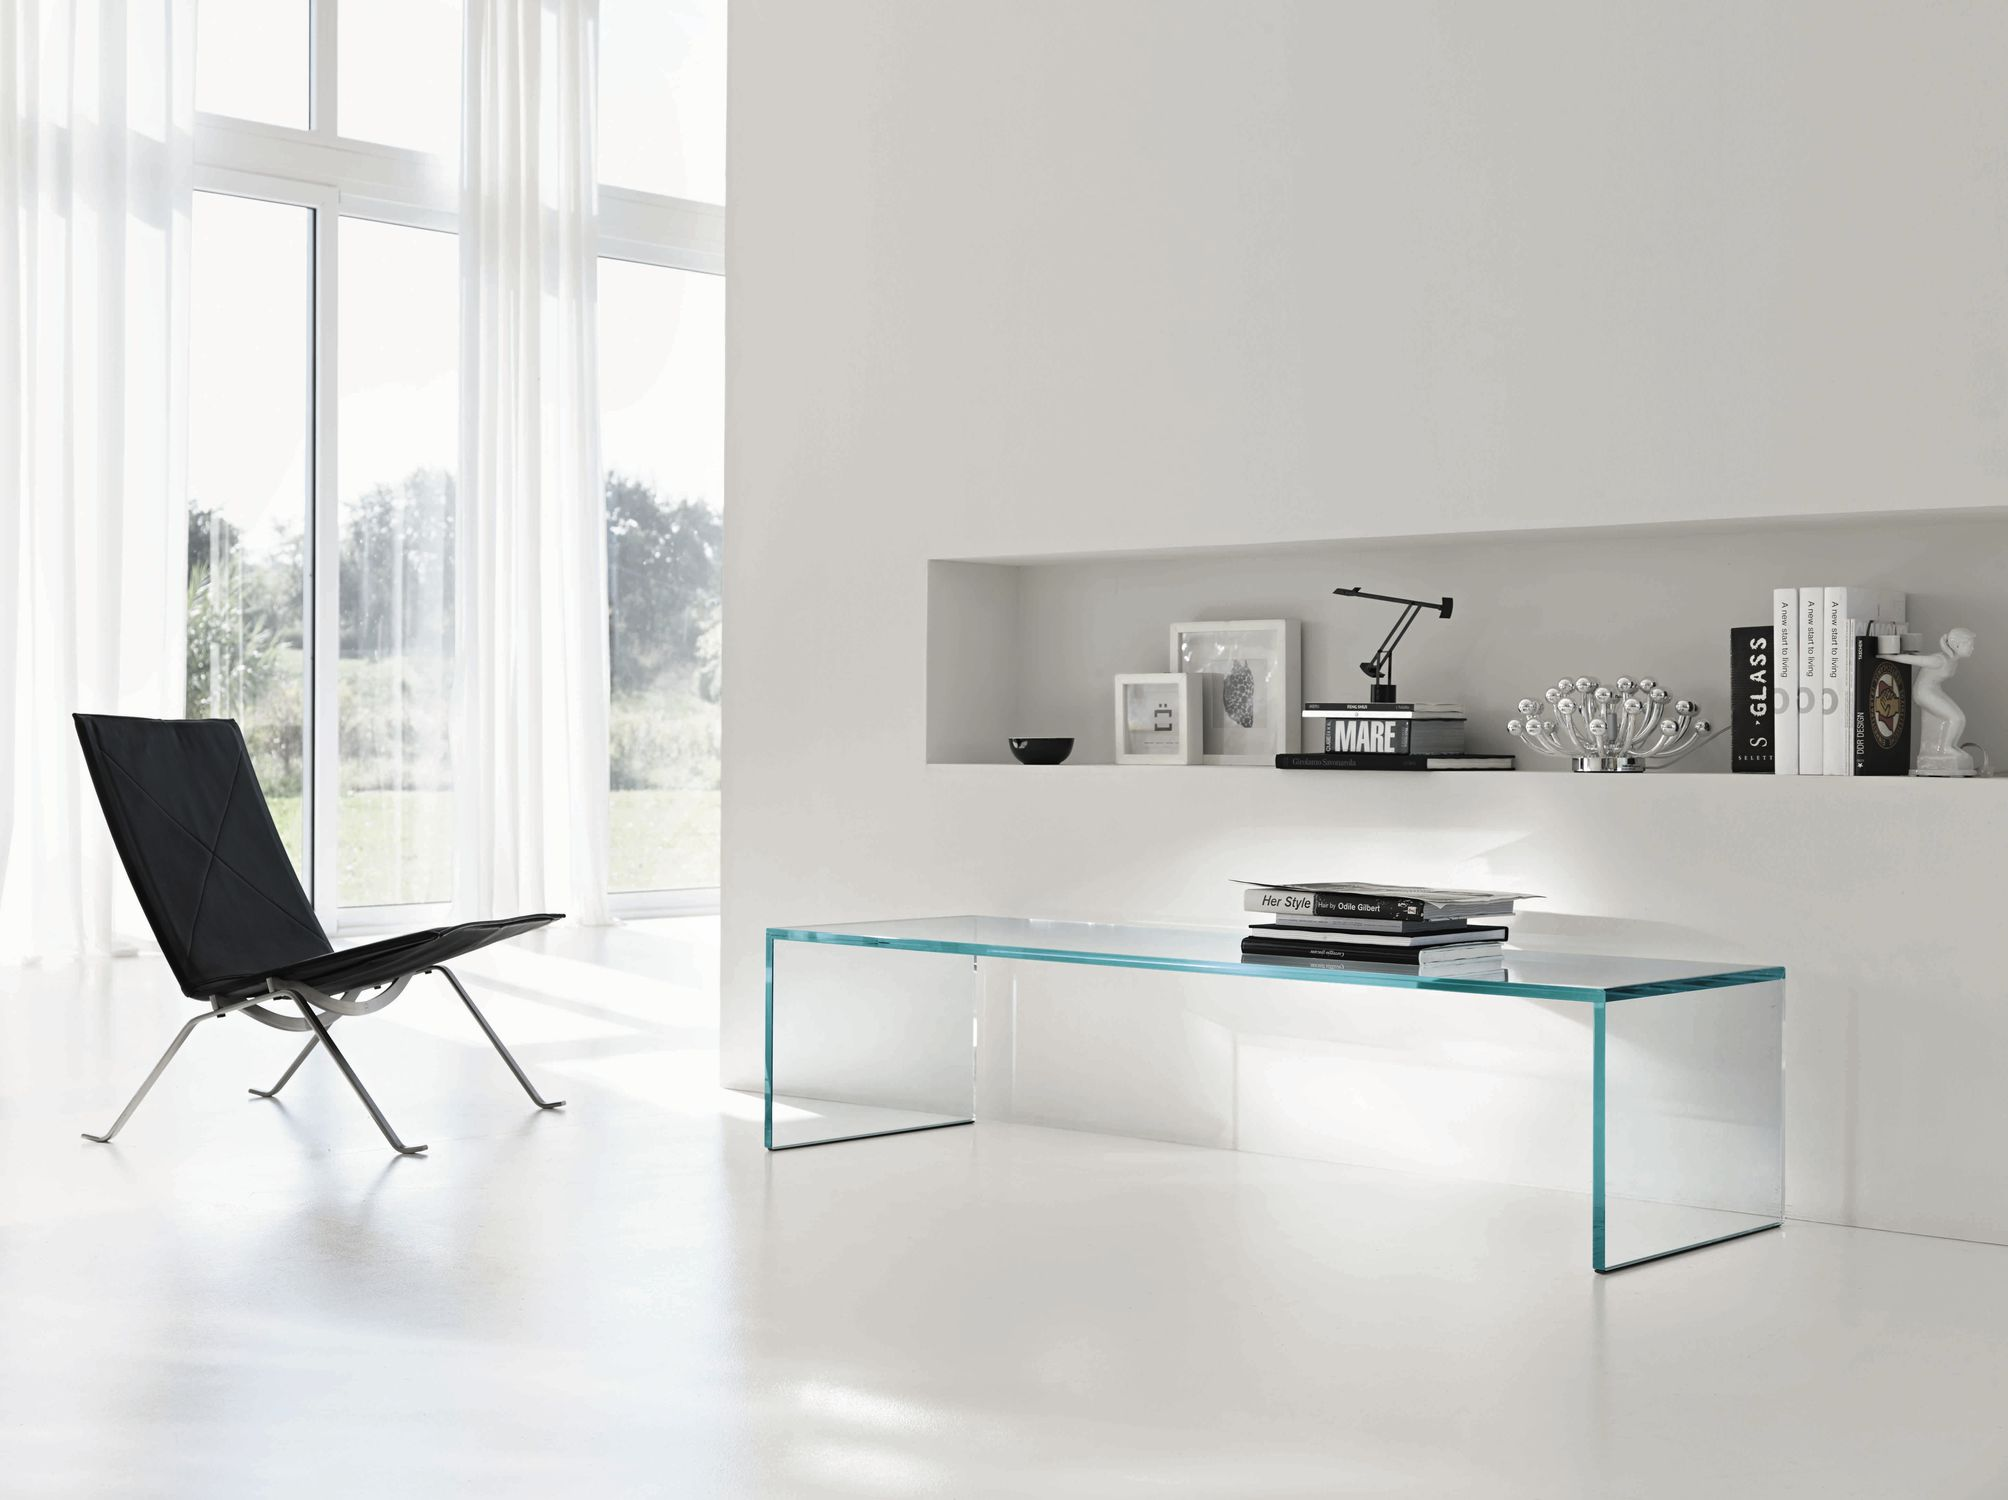 Exceptional Contemporary Coffee Table / Glass / Rectangular / Transparent CAPO HORN By  M.U. TONELLI Design ...